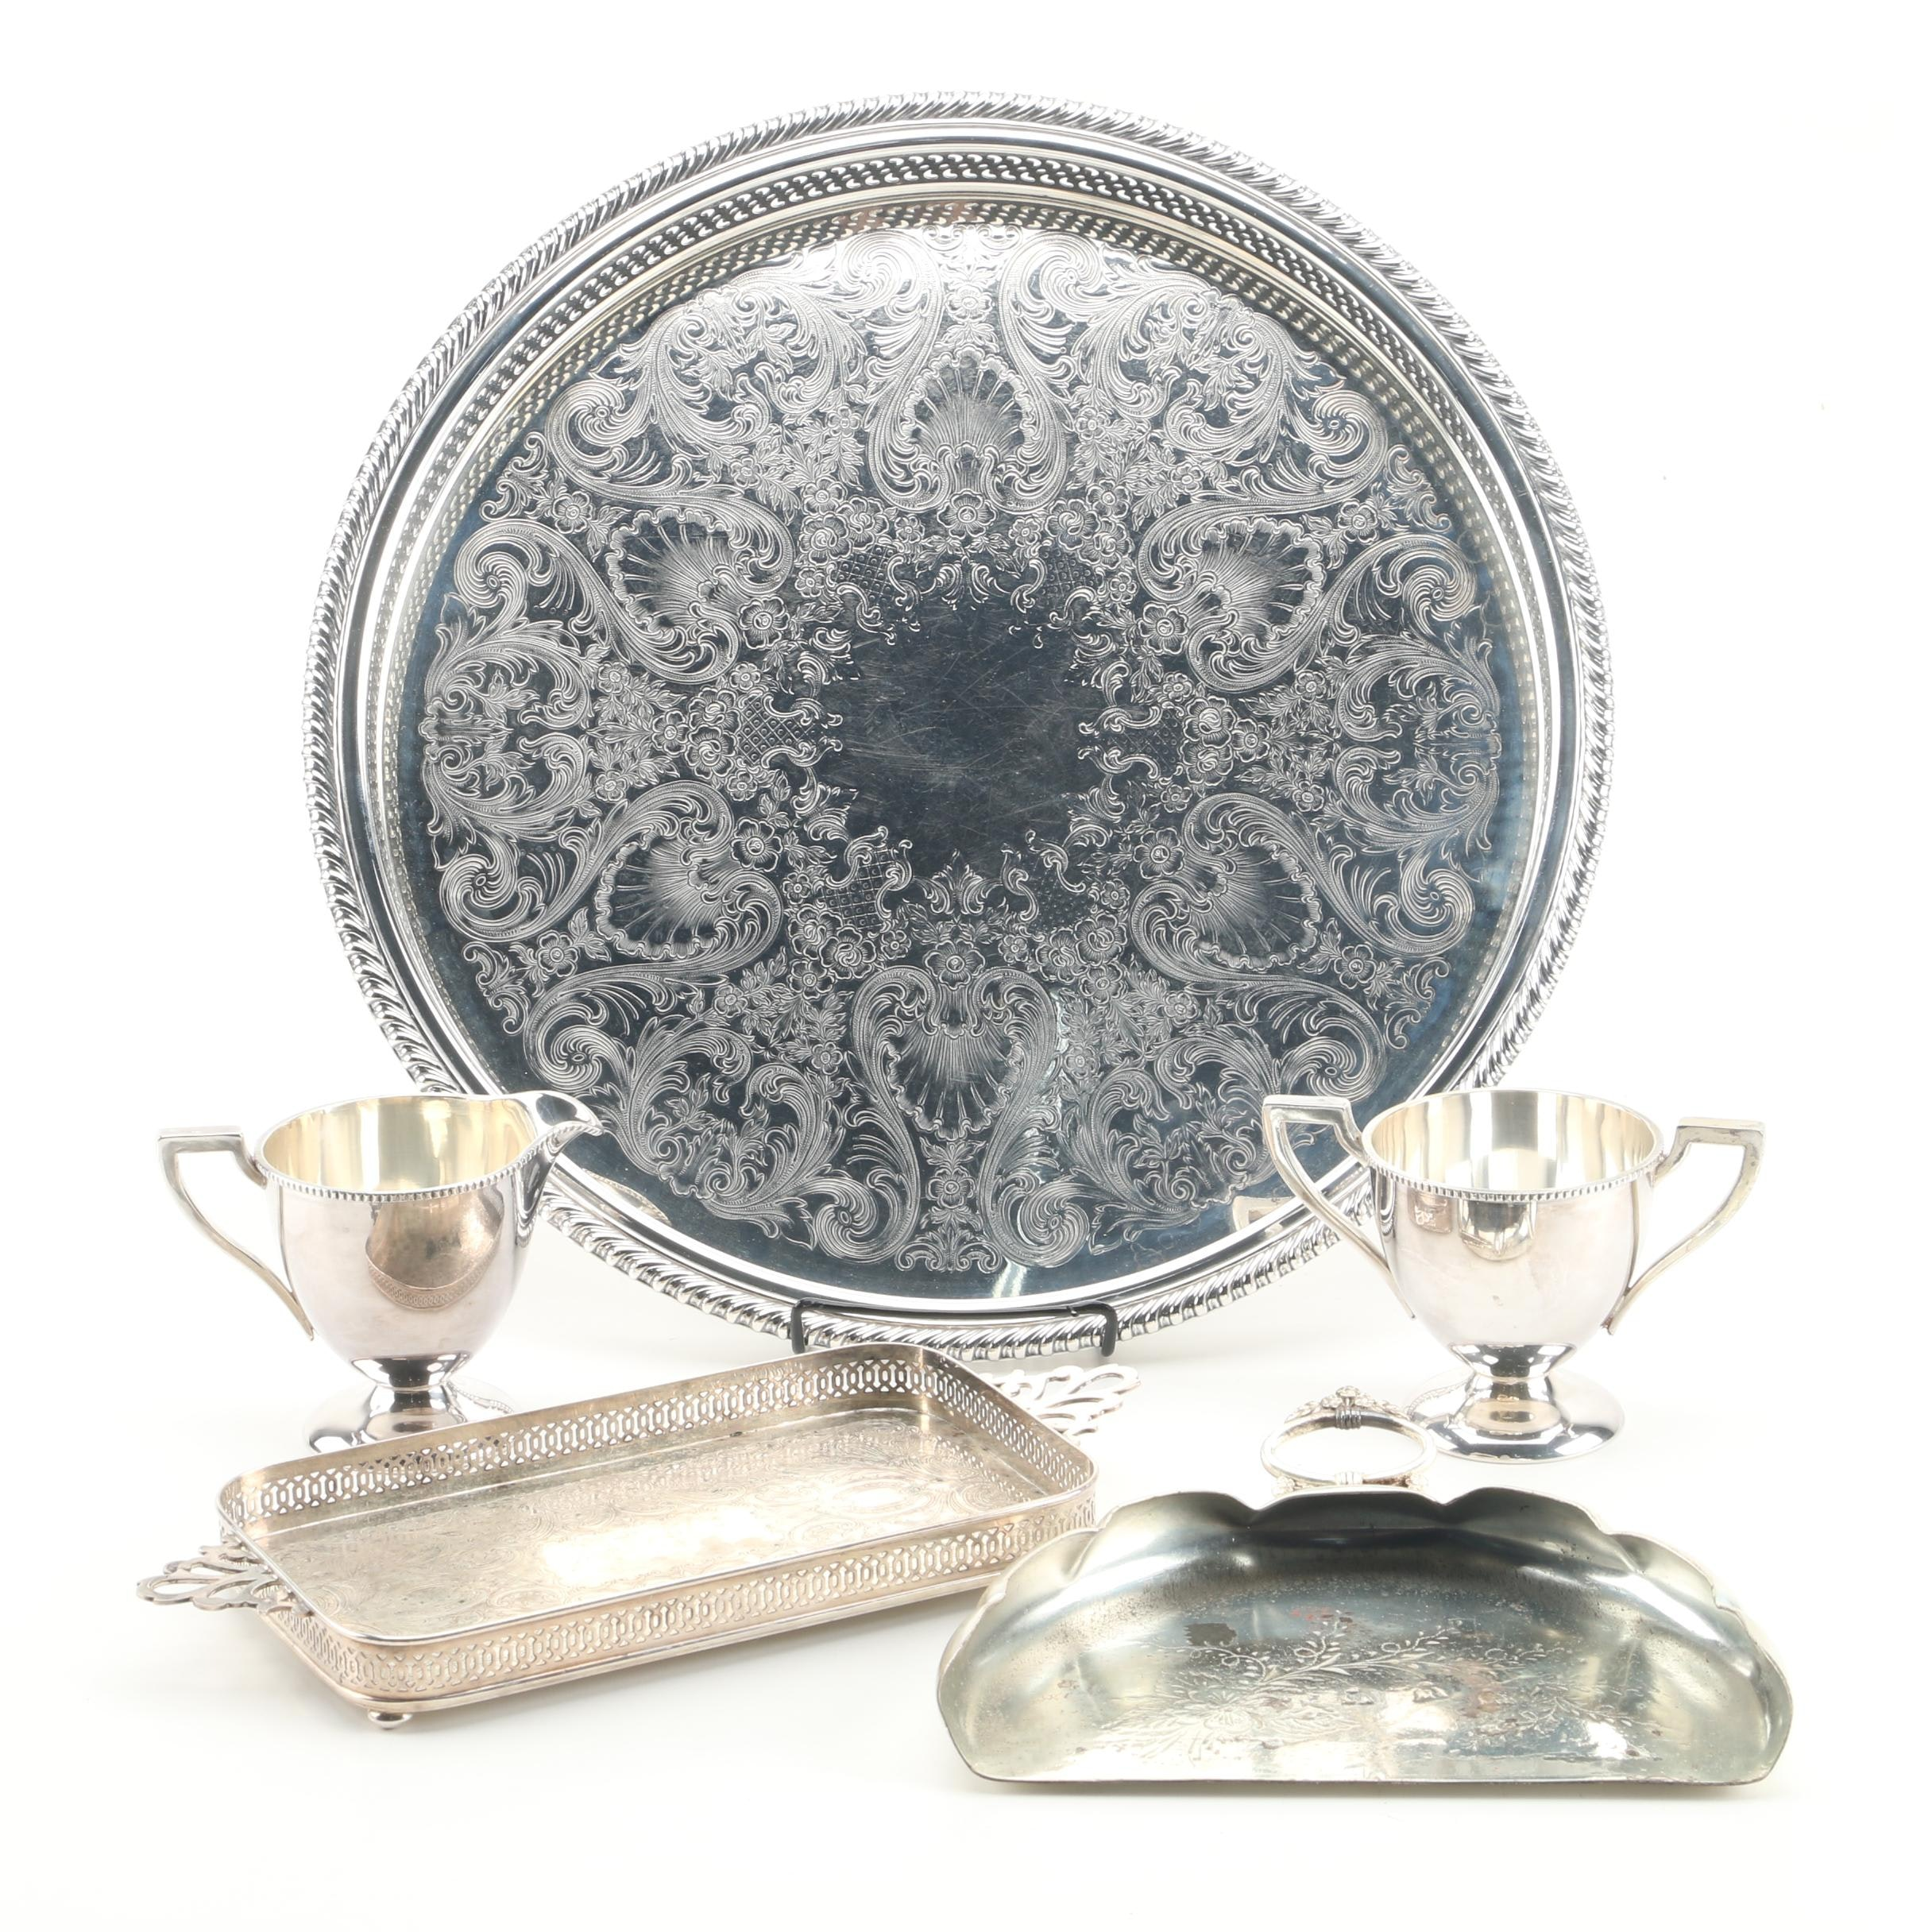 Wm. Rogers and Crescent Gallery Trays with Other Silver Plate Serveware